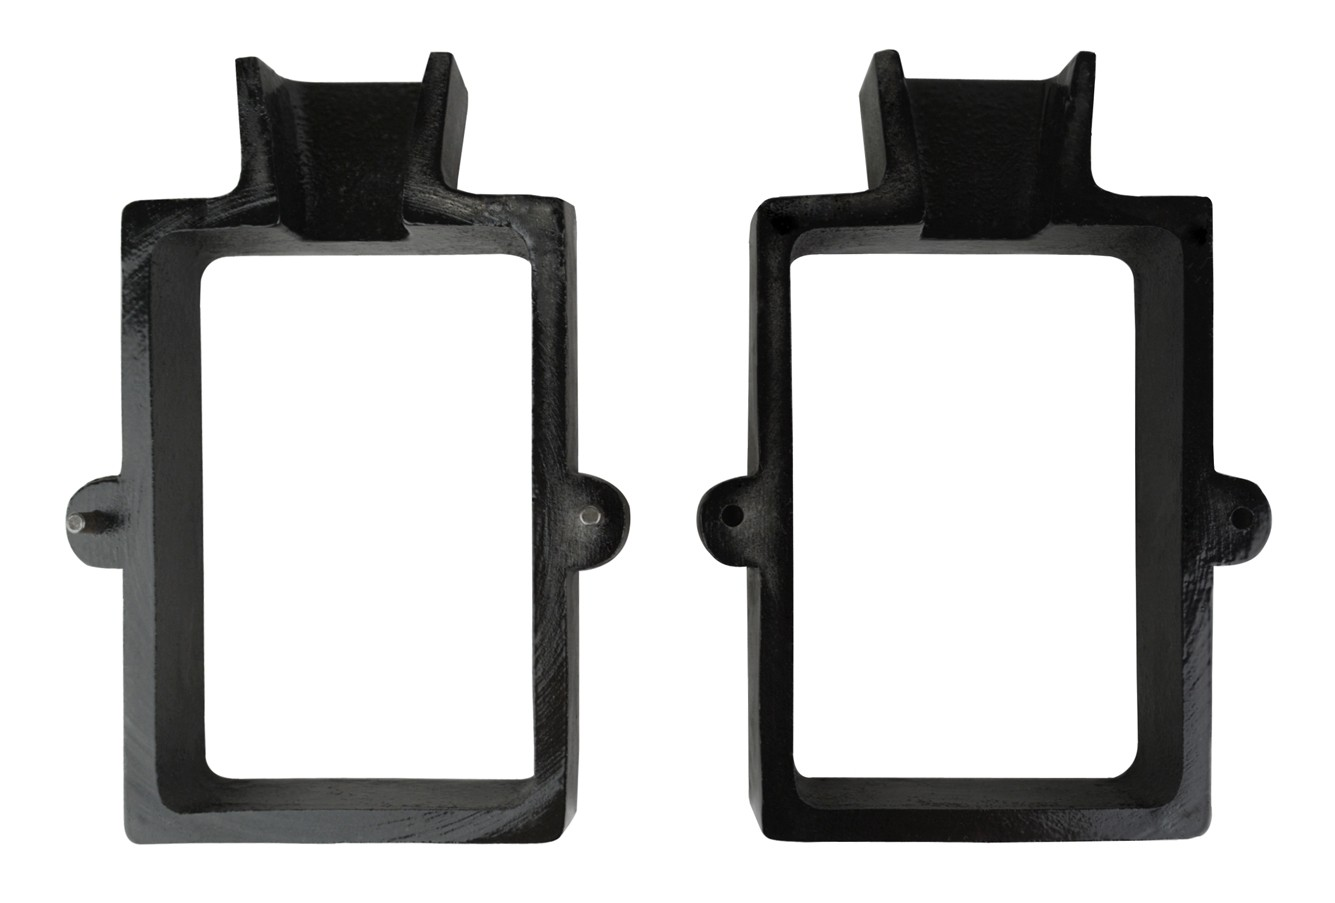 2-Piece Cast Iron Mold Flask Frame with 2 Pins